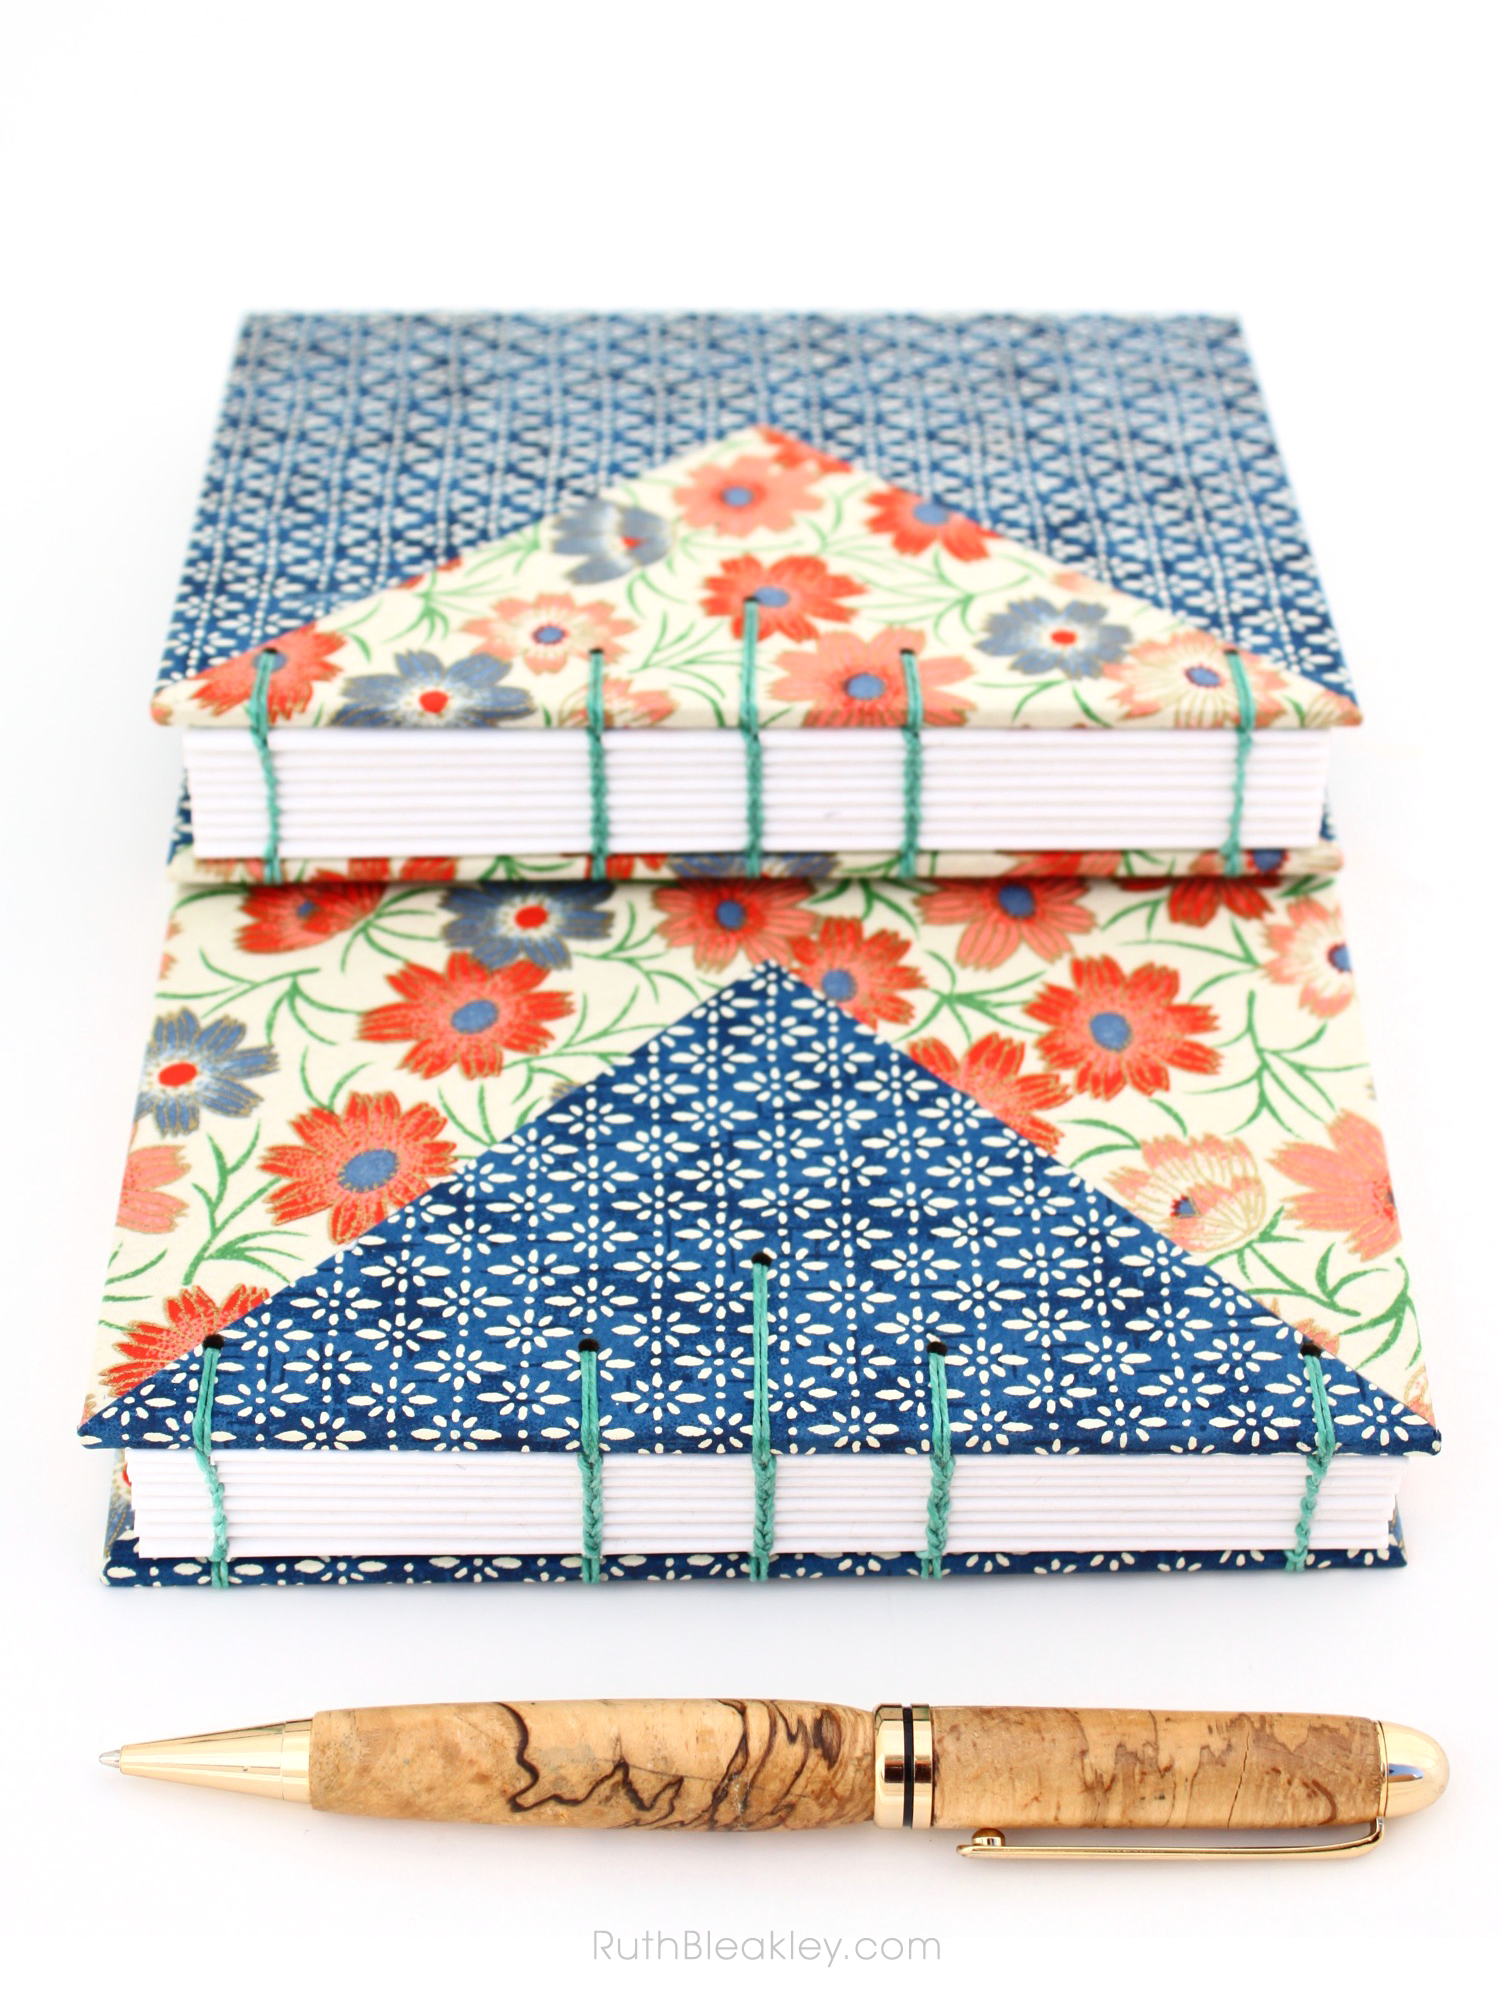 Chiyogami Twin Journals with Colorful Triangle Inlays handmade by Ruth Bleakley - 22